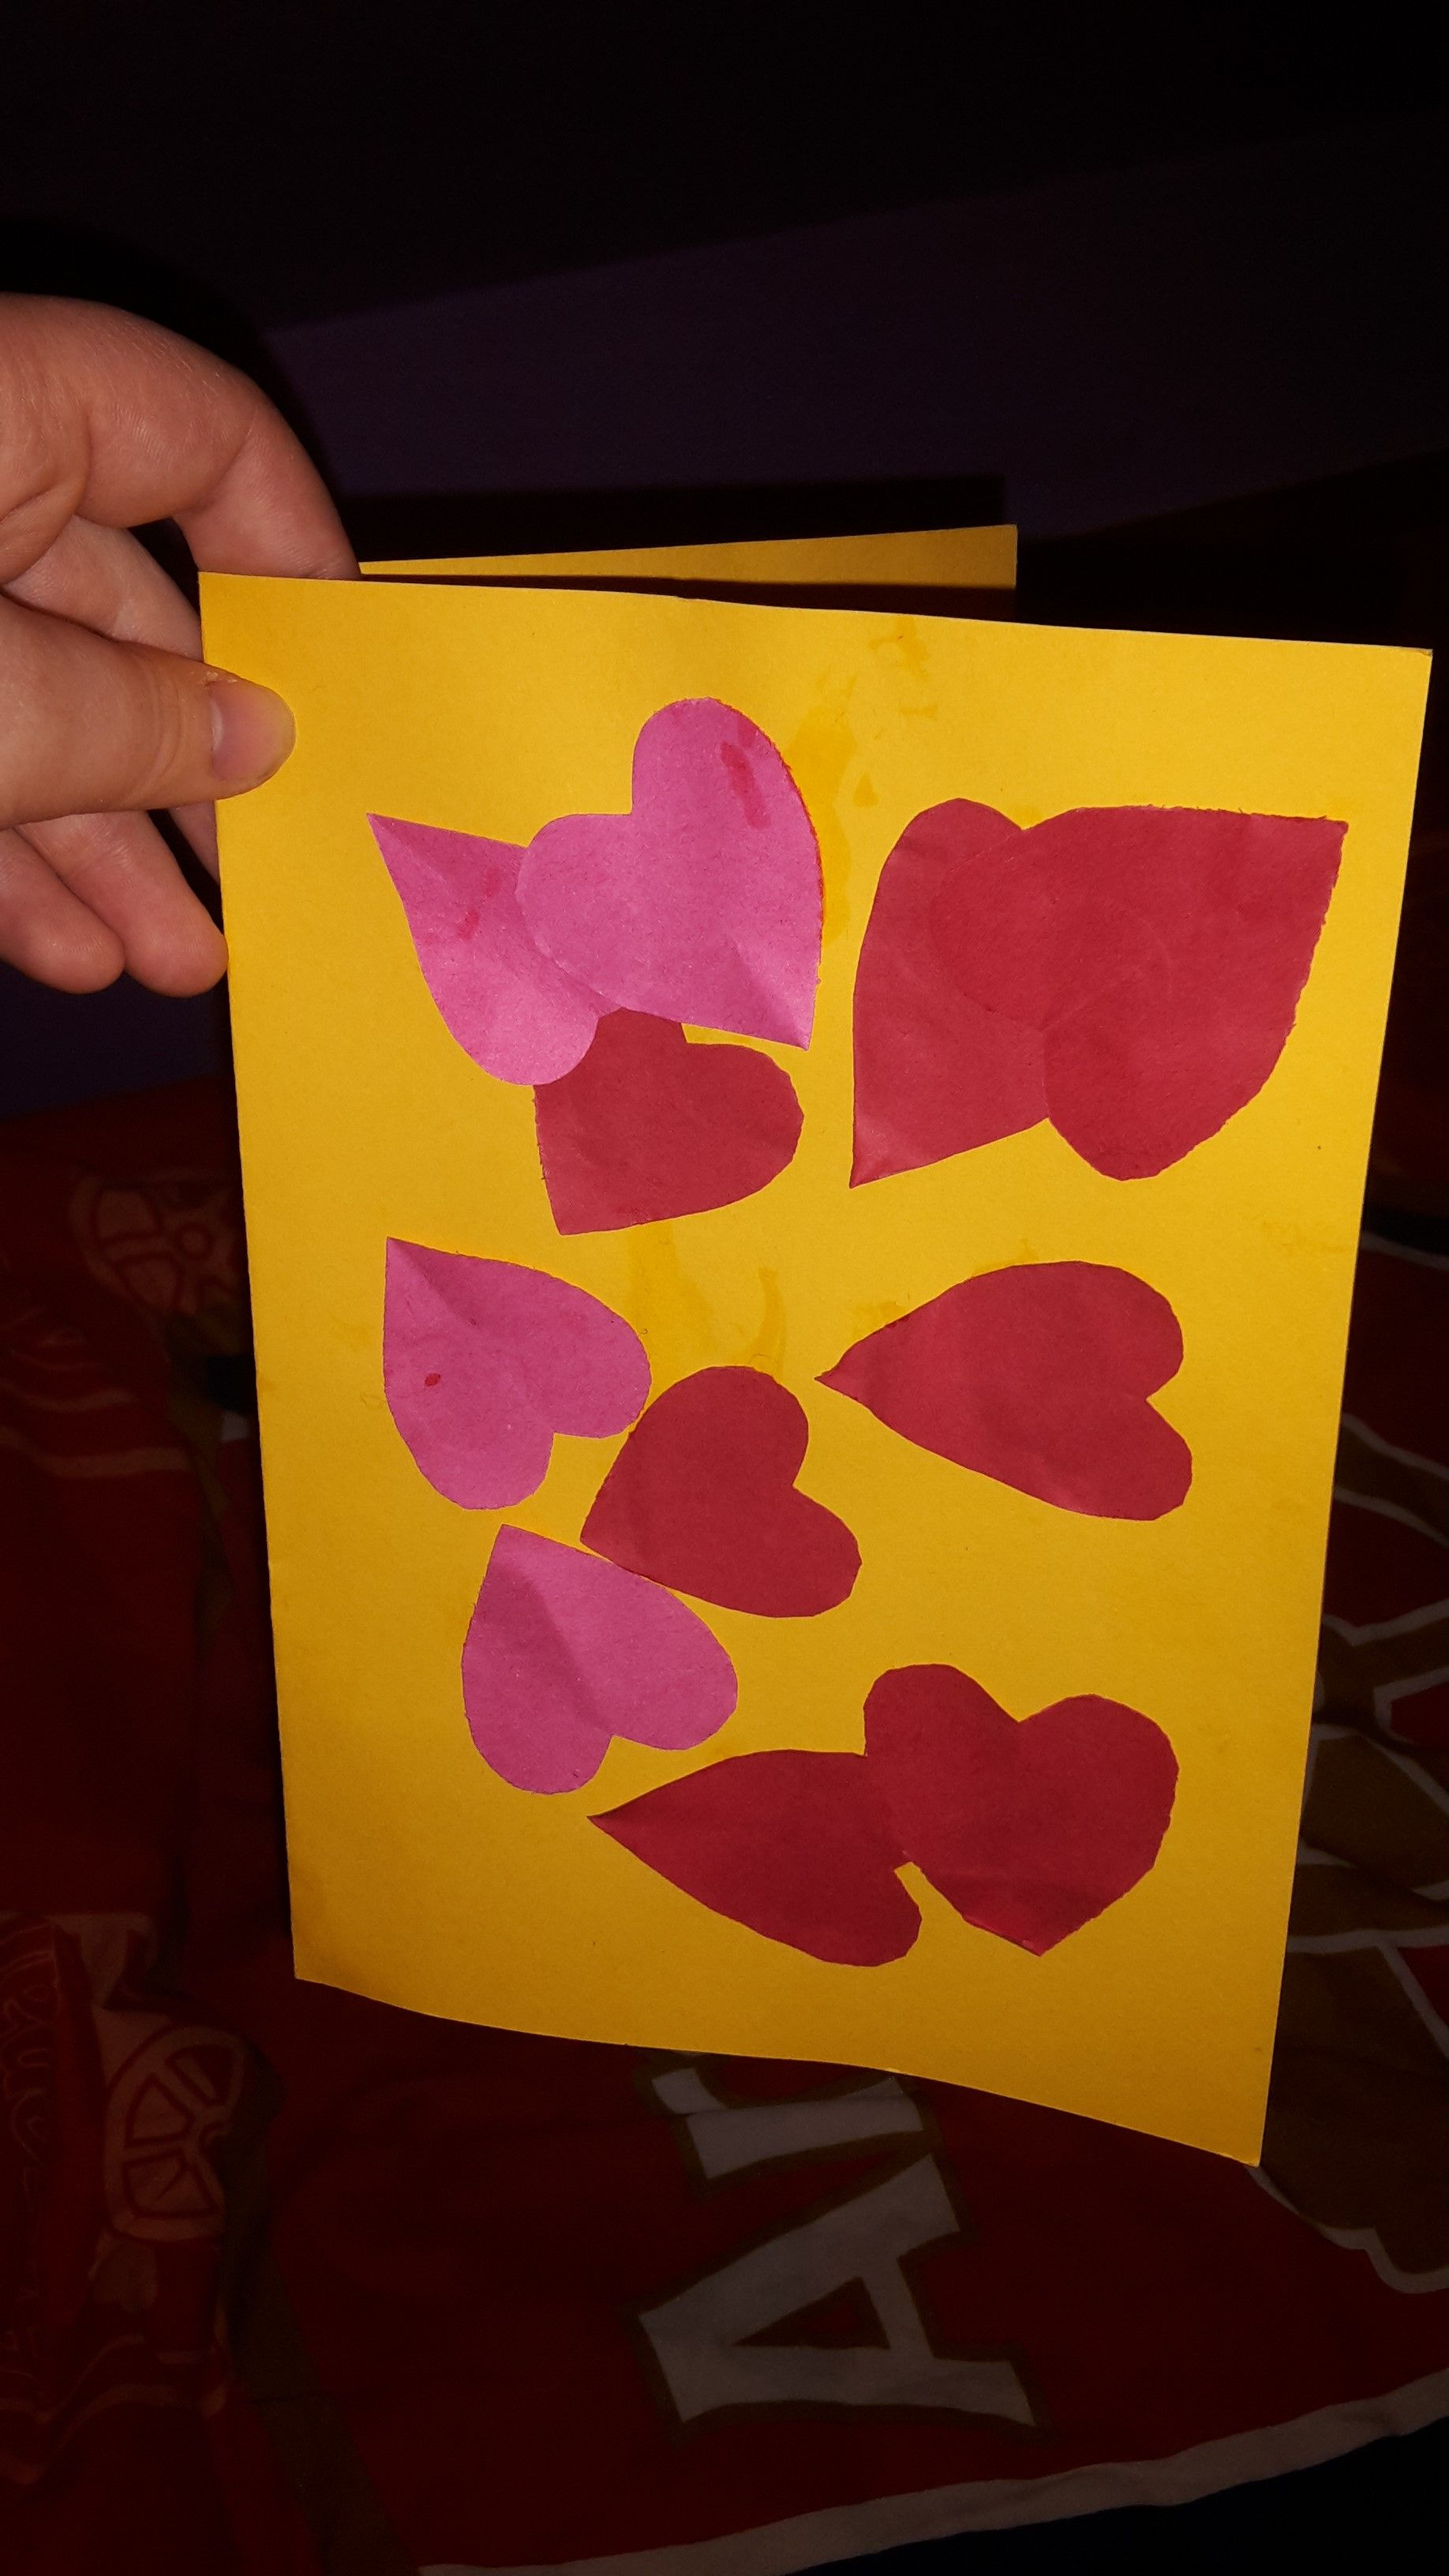 Picture 189 - (10th February 2015) Got a Valentine's card today off of one of my key children at work today... They can be so sweet sometimes, bless them!